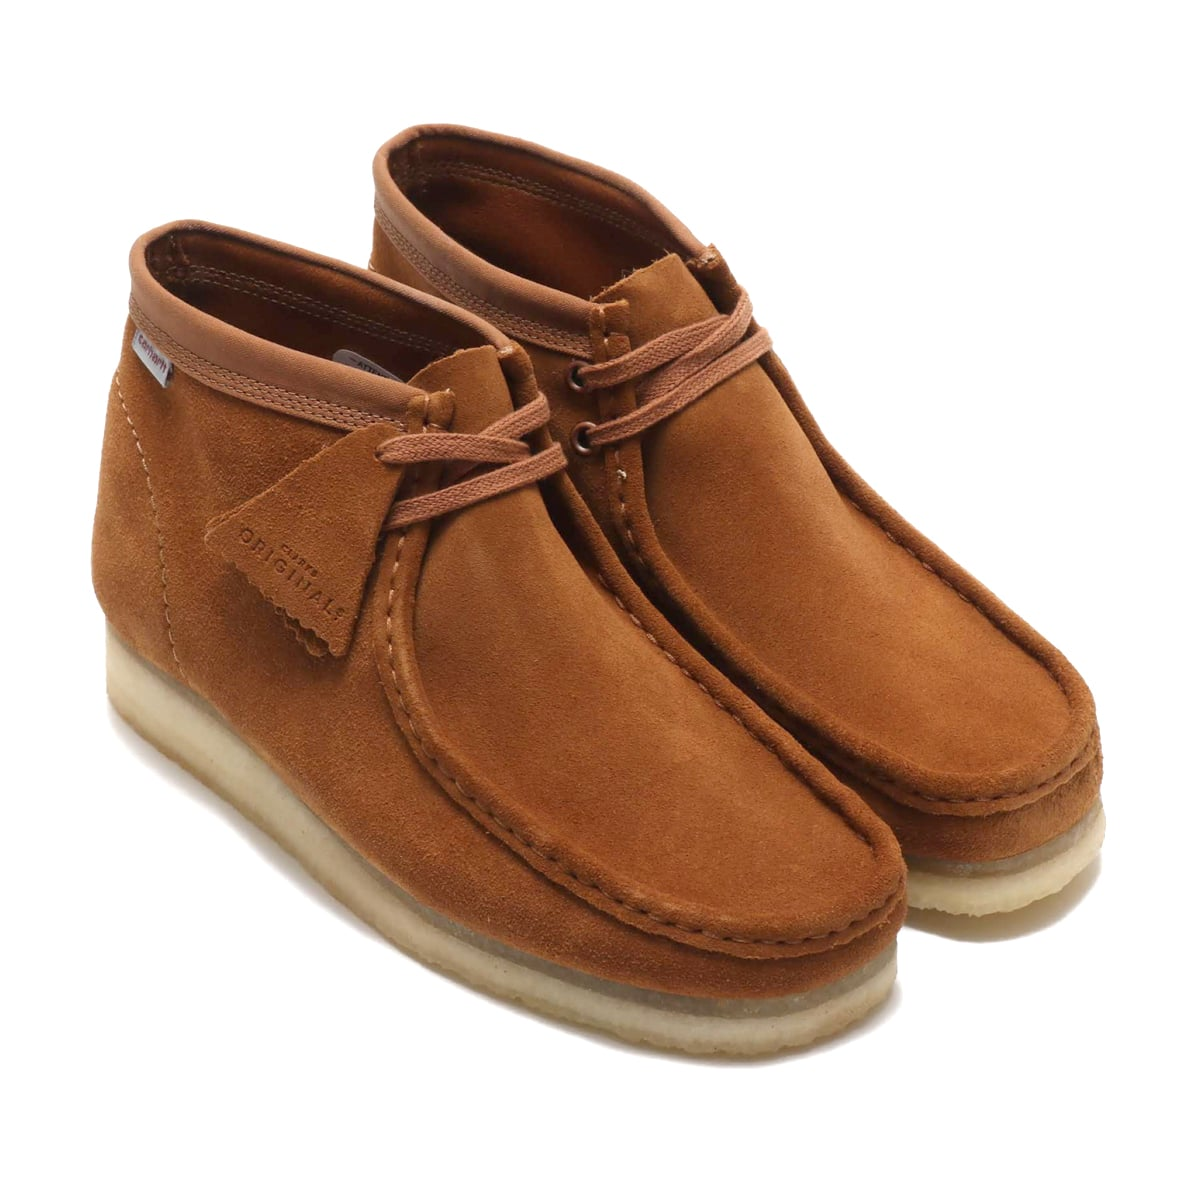 Clarks x Carhartt WIT Wallabee Boot Brown Combi Sde 19FW-S_photo_large